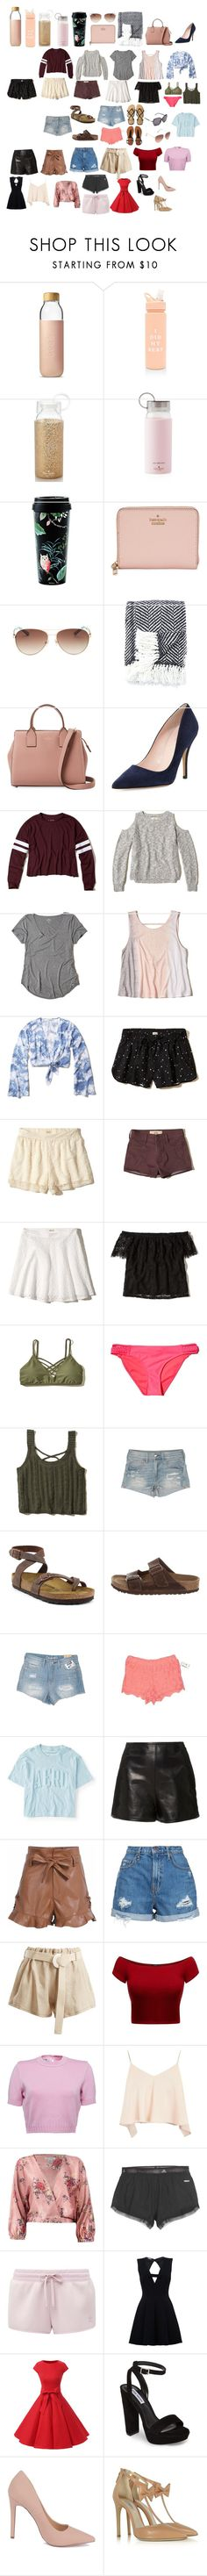 """""""Untitled #482"""" by savannahtaylor950 on Polyvore featuring Soma, ban.do, Kate Spade, Hollister Co., American Eagle Outfitters, Birkenstock, Aéropostale, RED Valentino, Nobody Denim and Albus Lumen"""